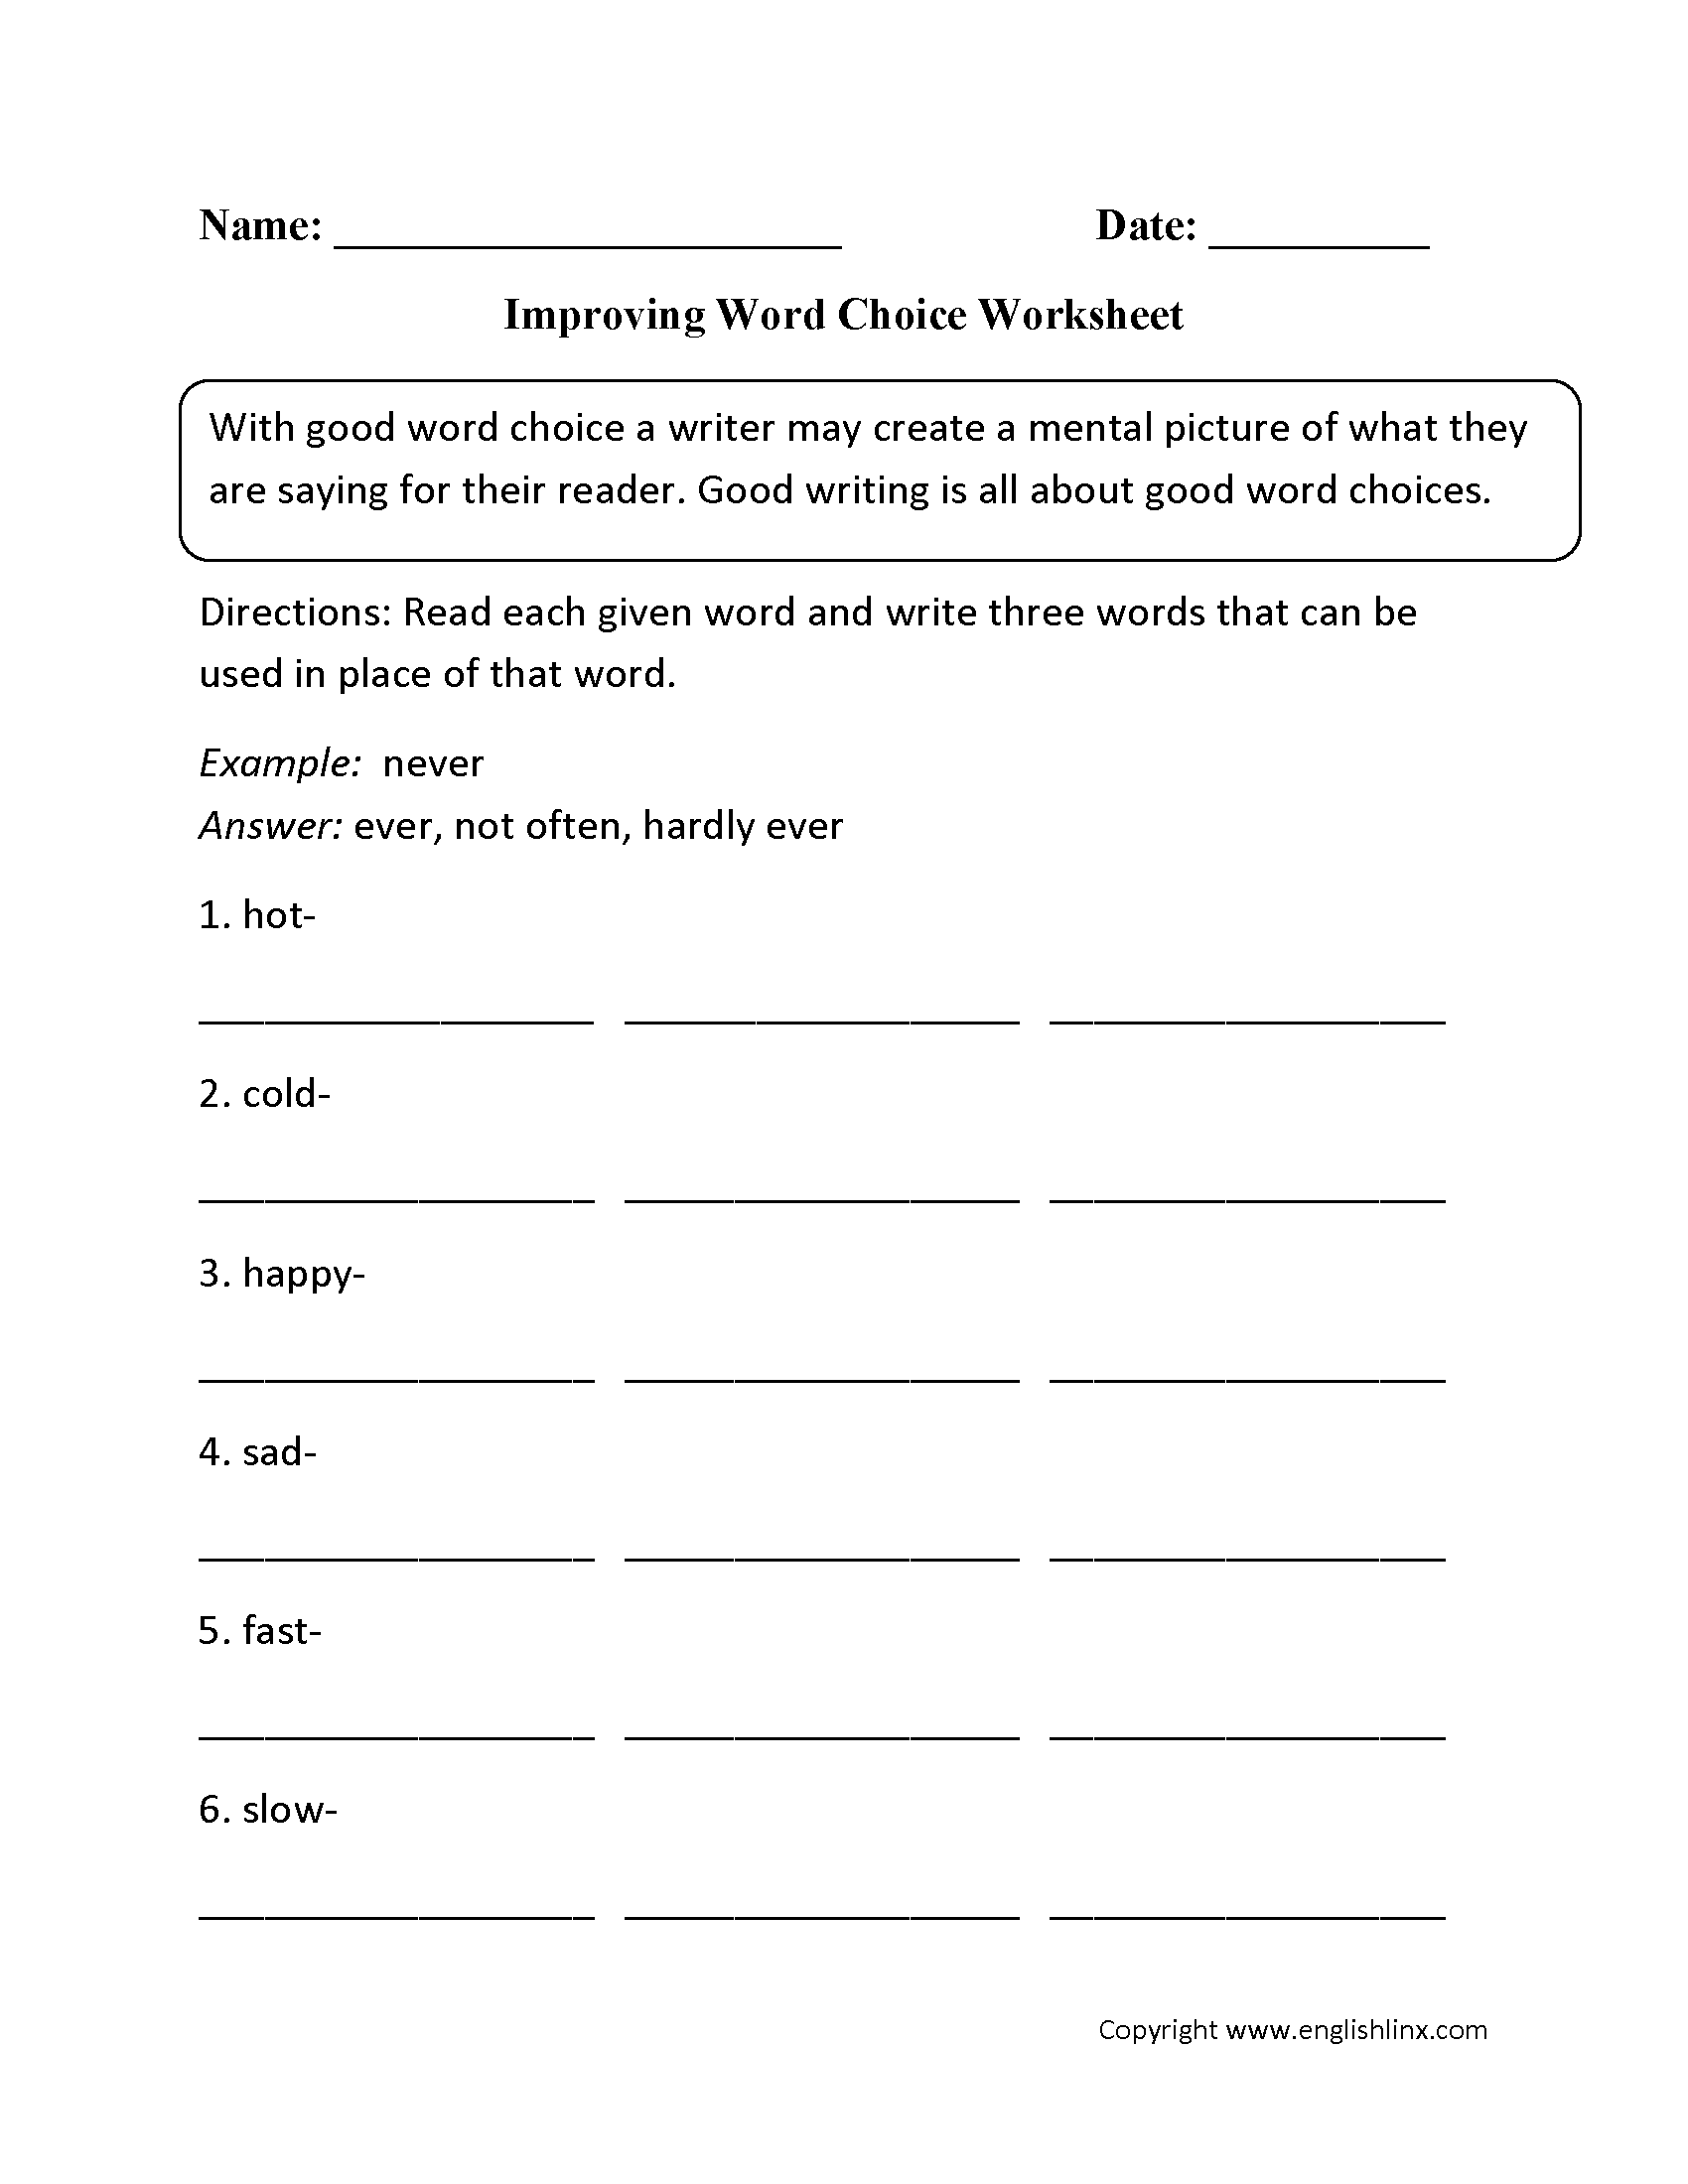 Worksheet Sensory Words Worksheet Grass Fedjp Worksheet